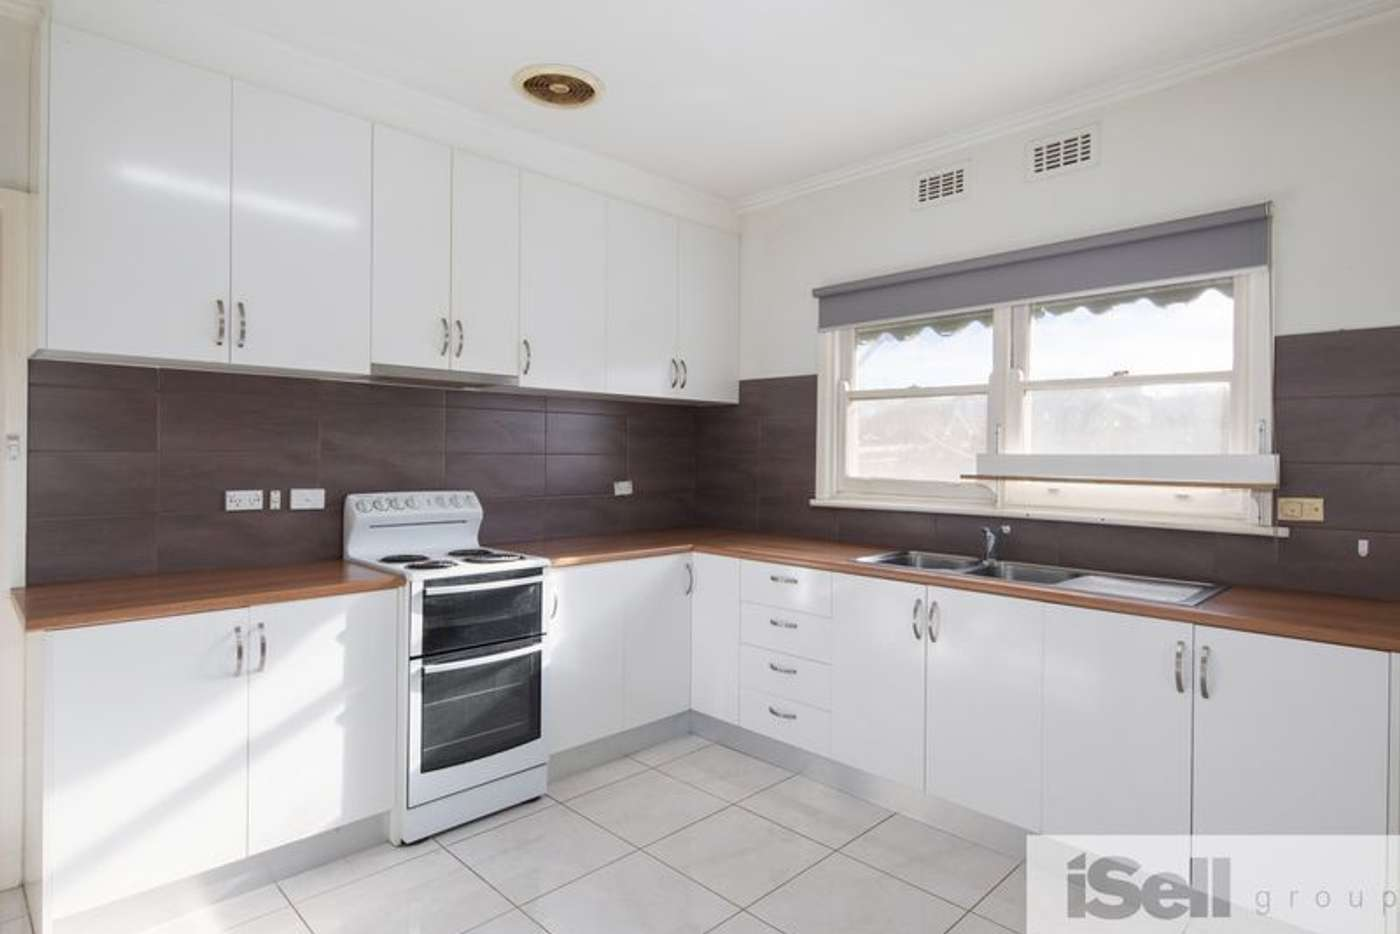 Main view of Homely house listing, 31 Hope Street, Springvale VIC 3171